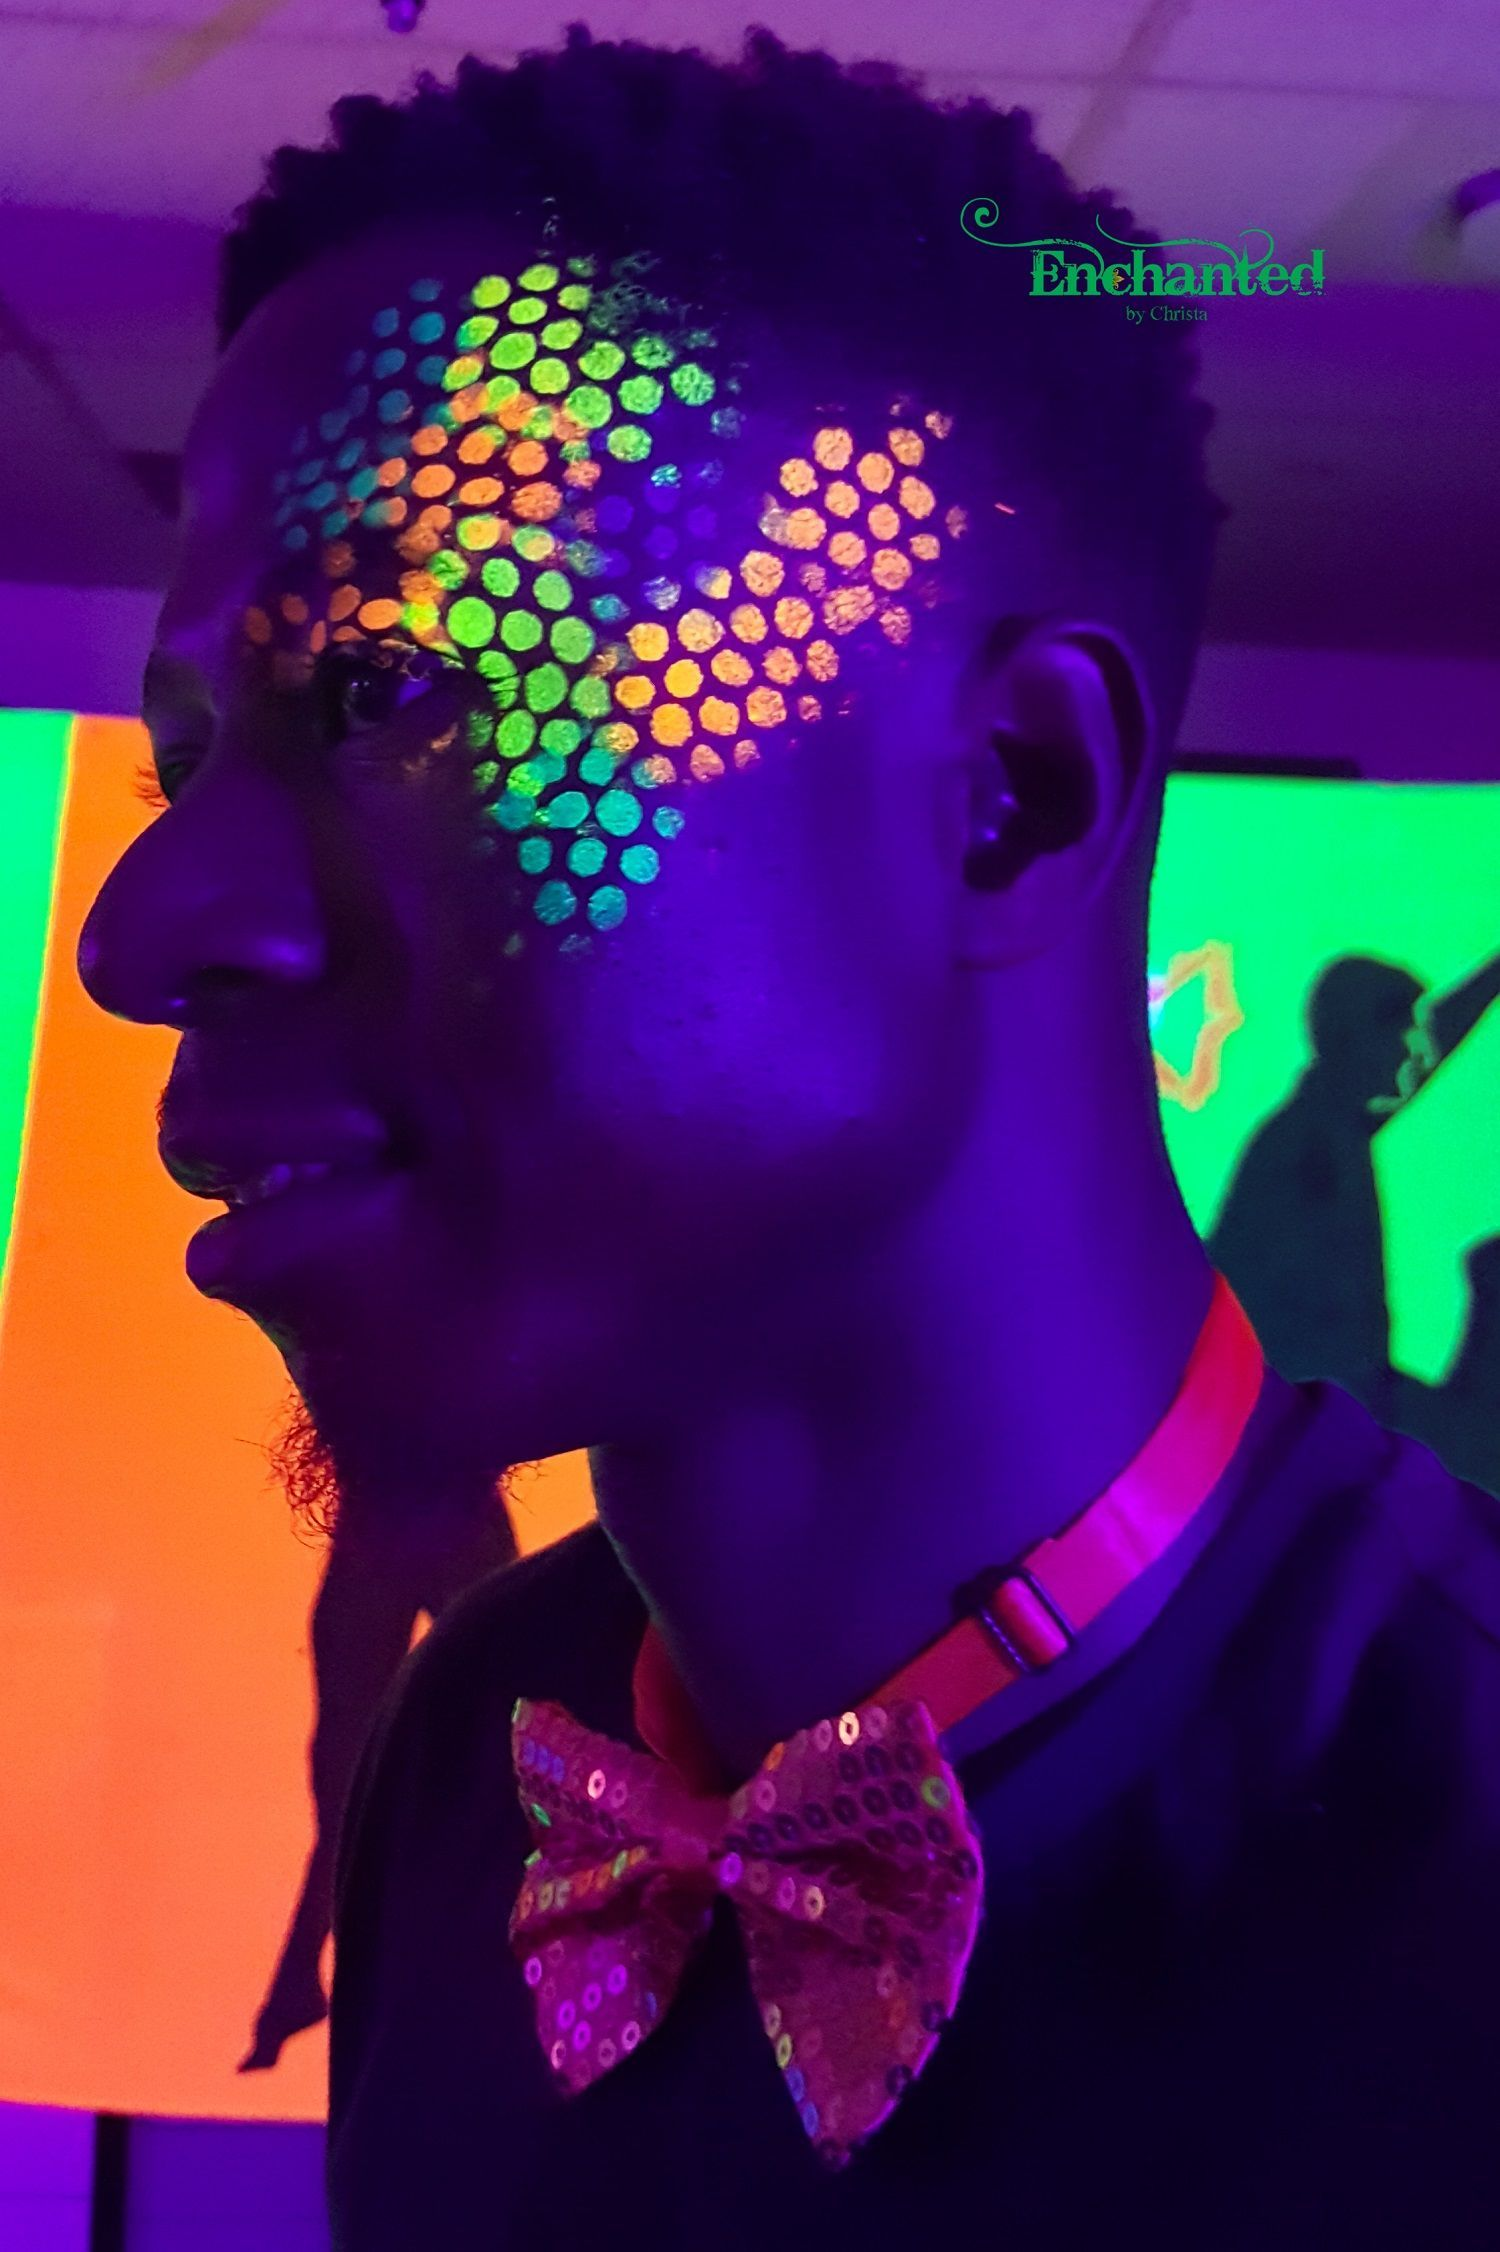 Uv Face Paint Design I Just Love The Way These Glow In The Dark Face Paint Designs Pop Under Uv Lights In 2020 Uv Face Paint Festival Face Paint Neon Face Paint